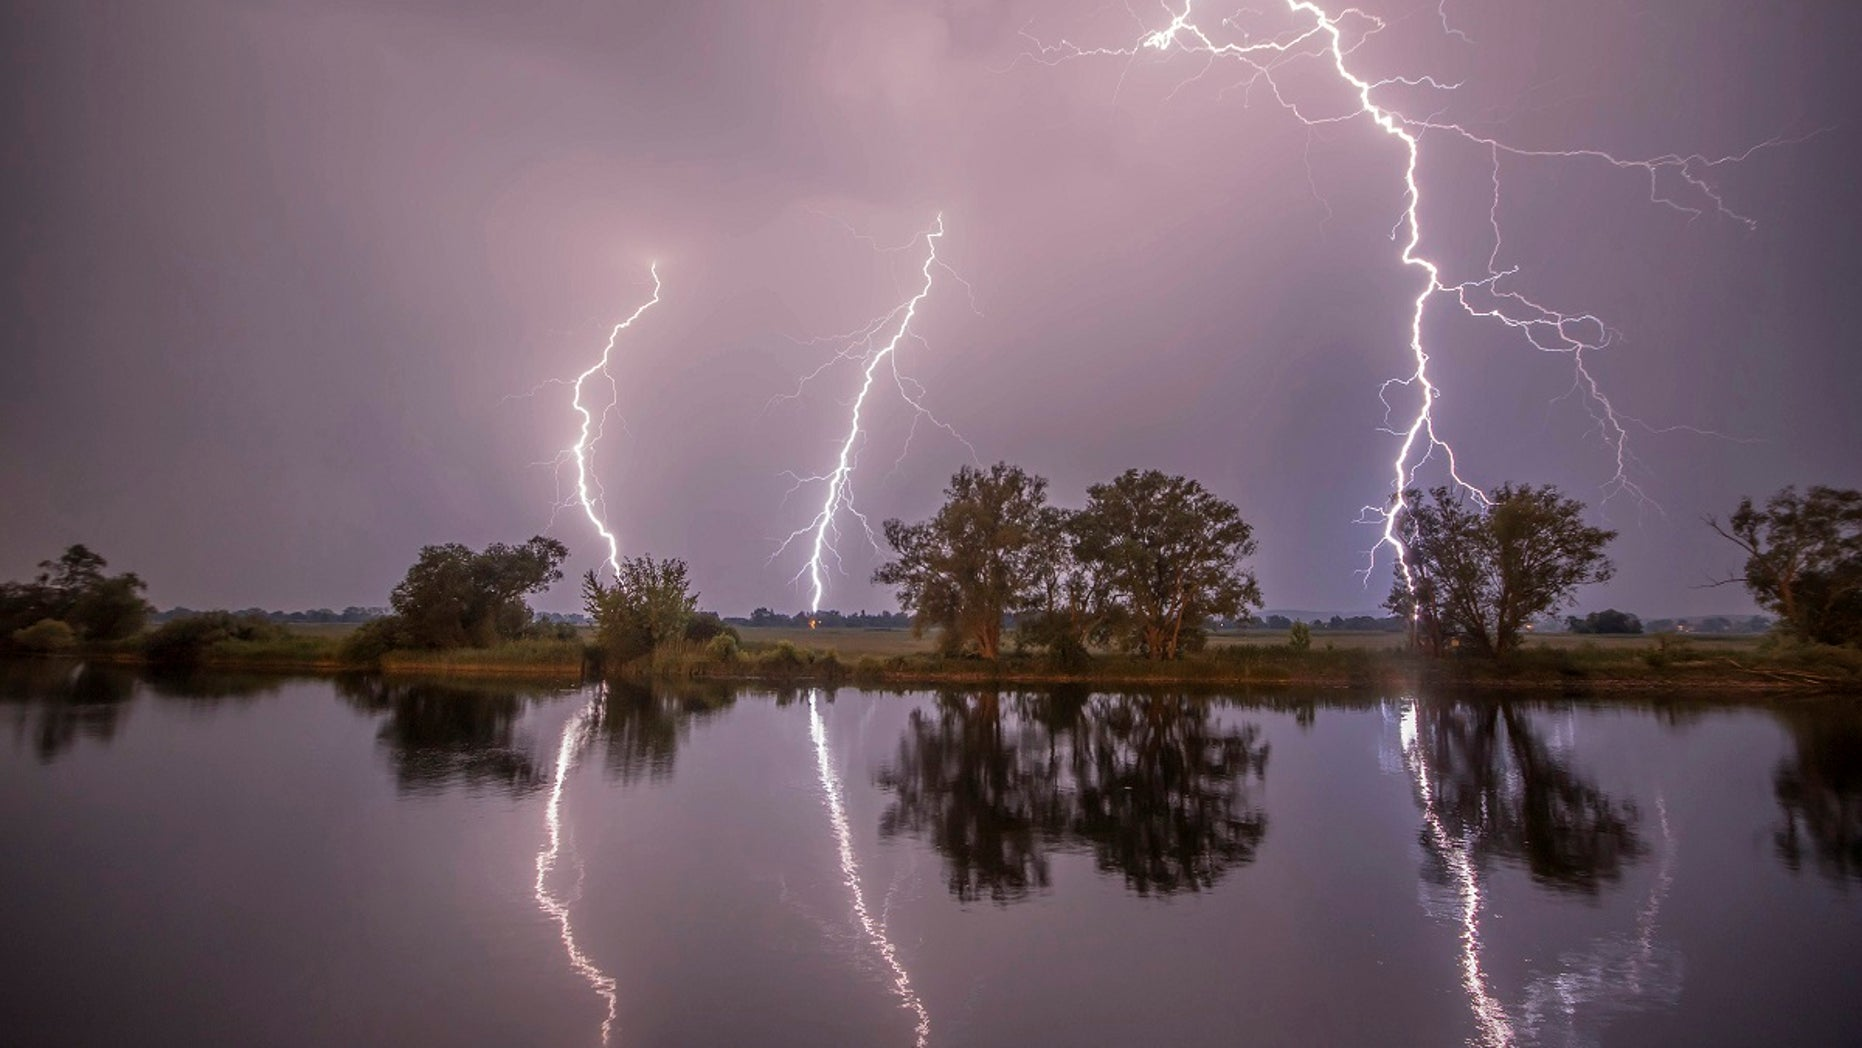 Two young women were seriously injured Sunday after lightning struck them while they were taking selfies in western Germany.